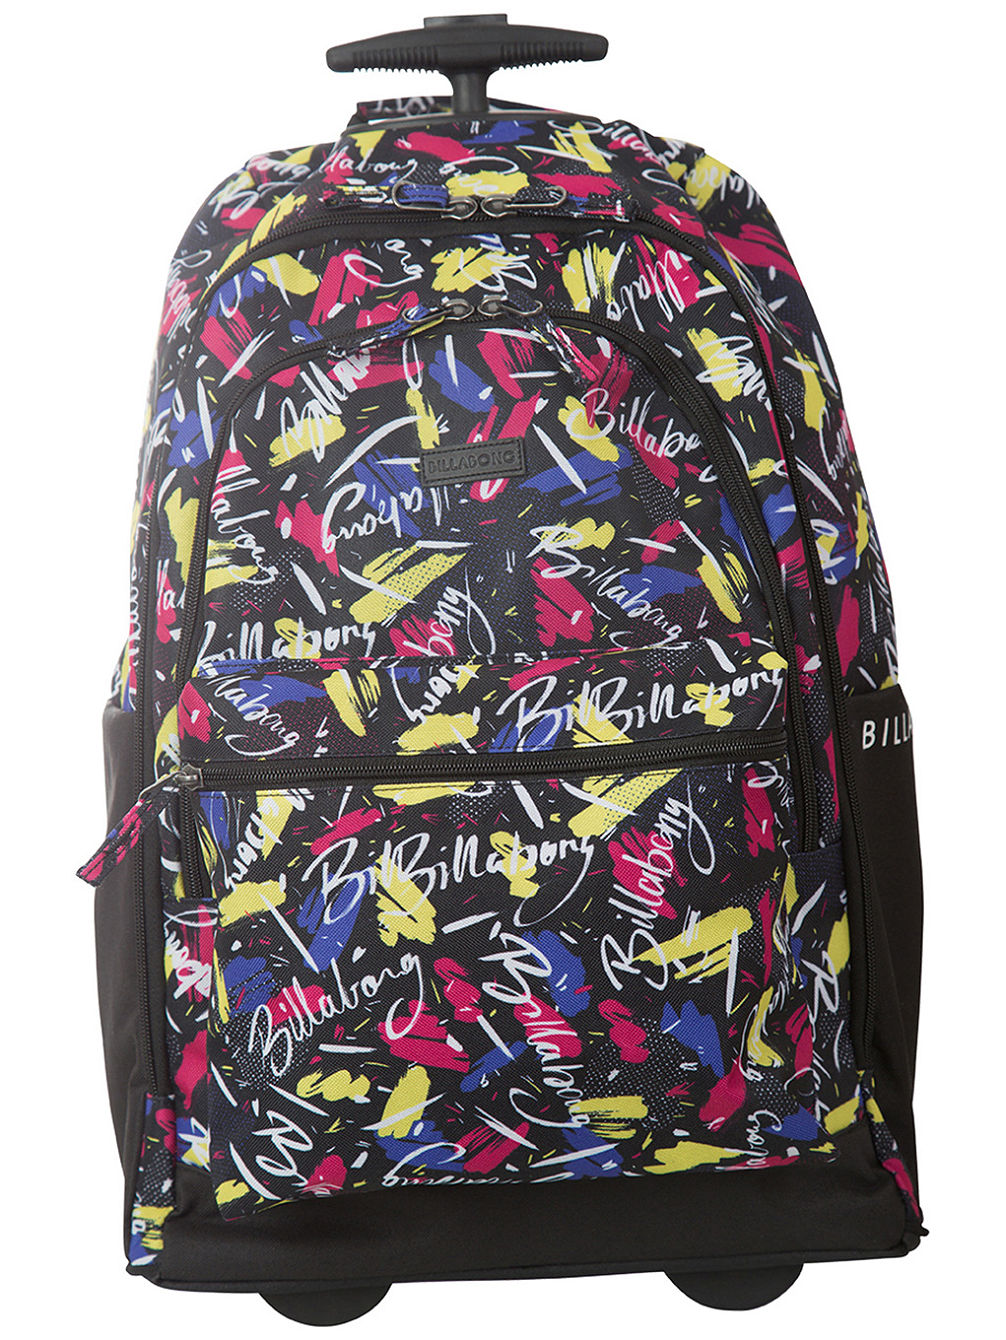 Buy Billabong Walk N Roll Backpack online at blue-tomato.com